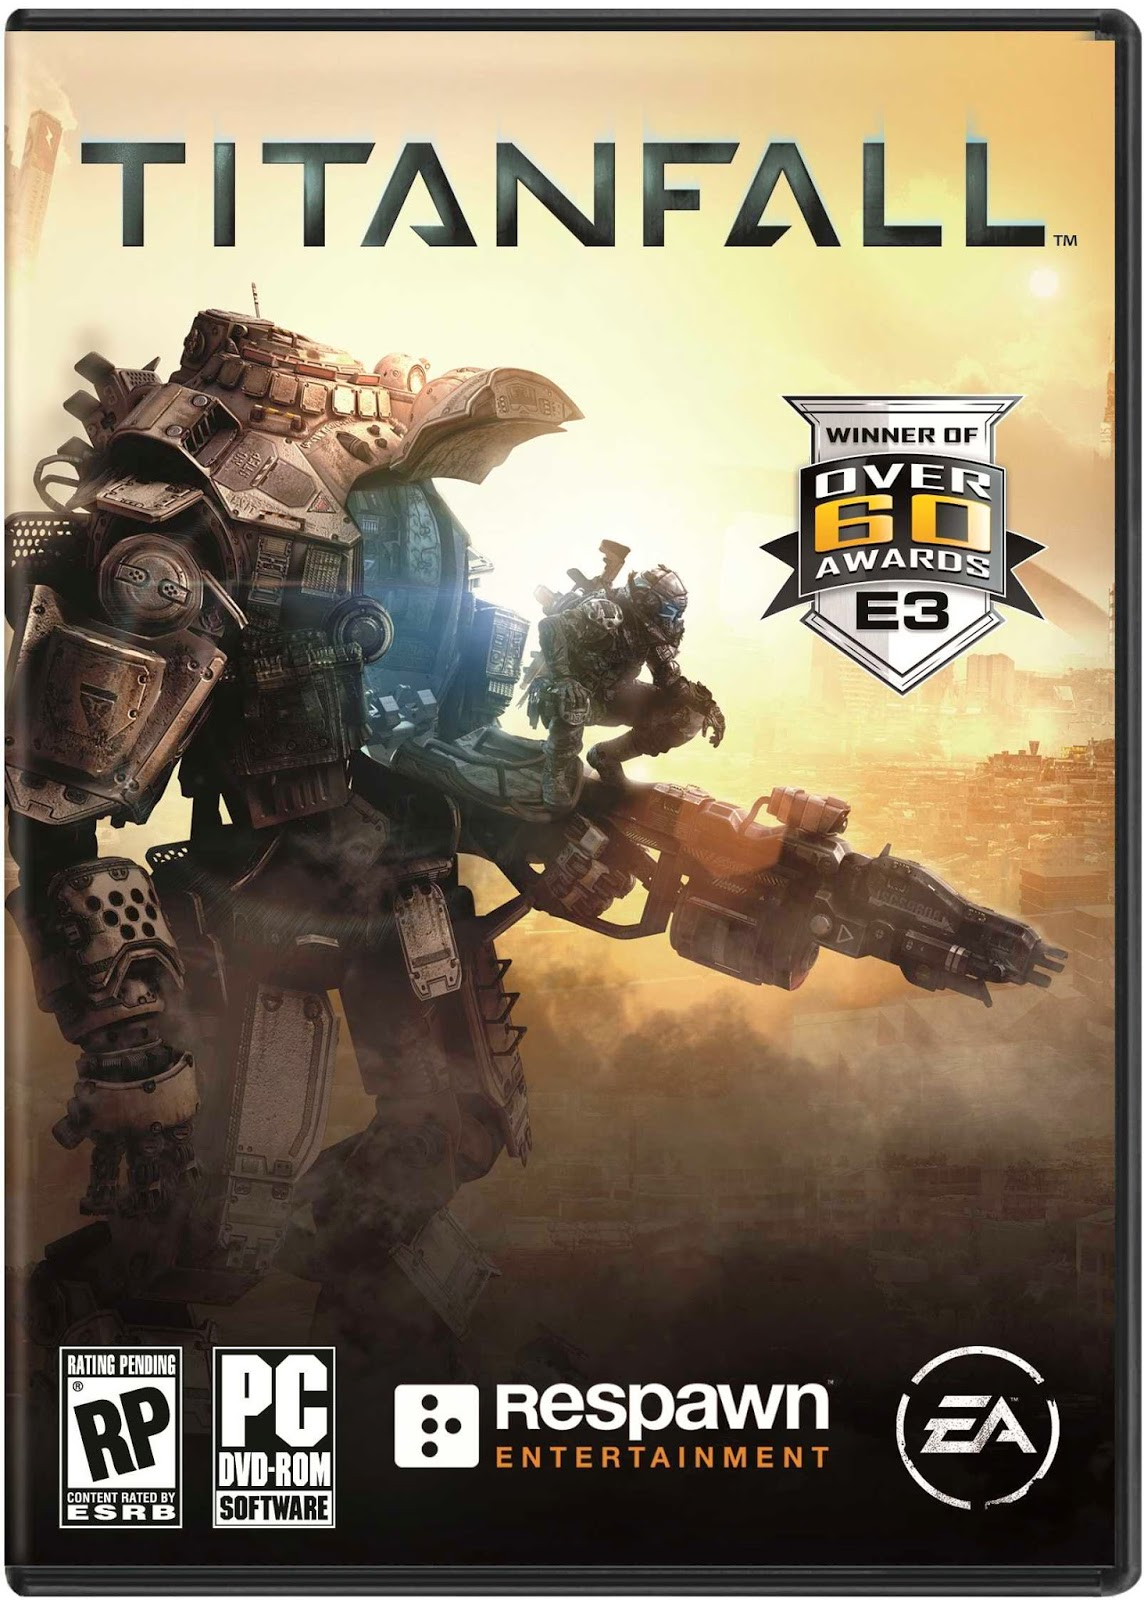 TitanFall Full PC Download